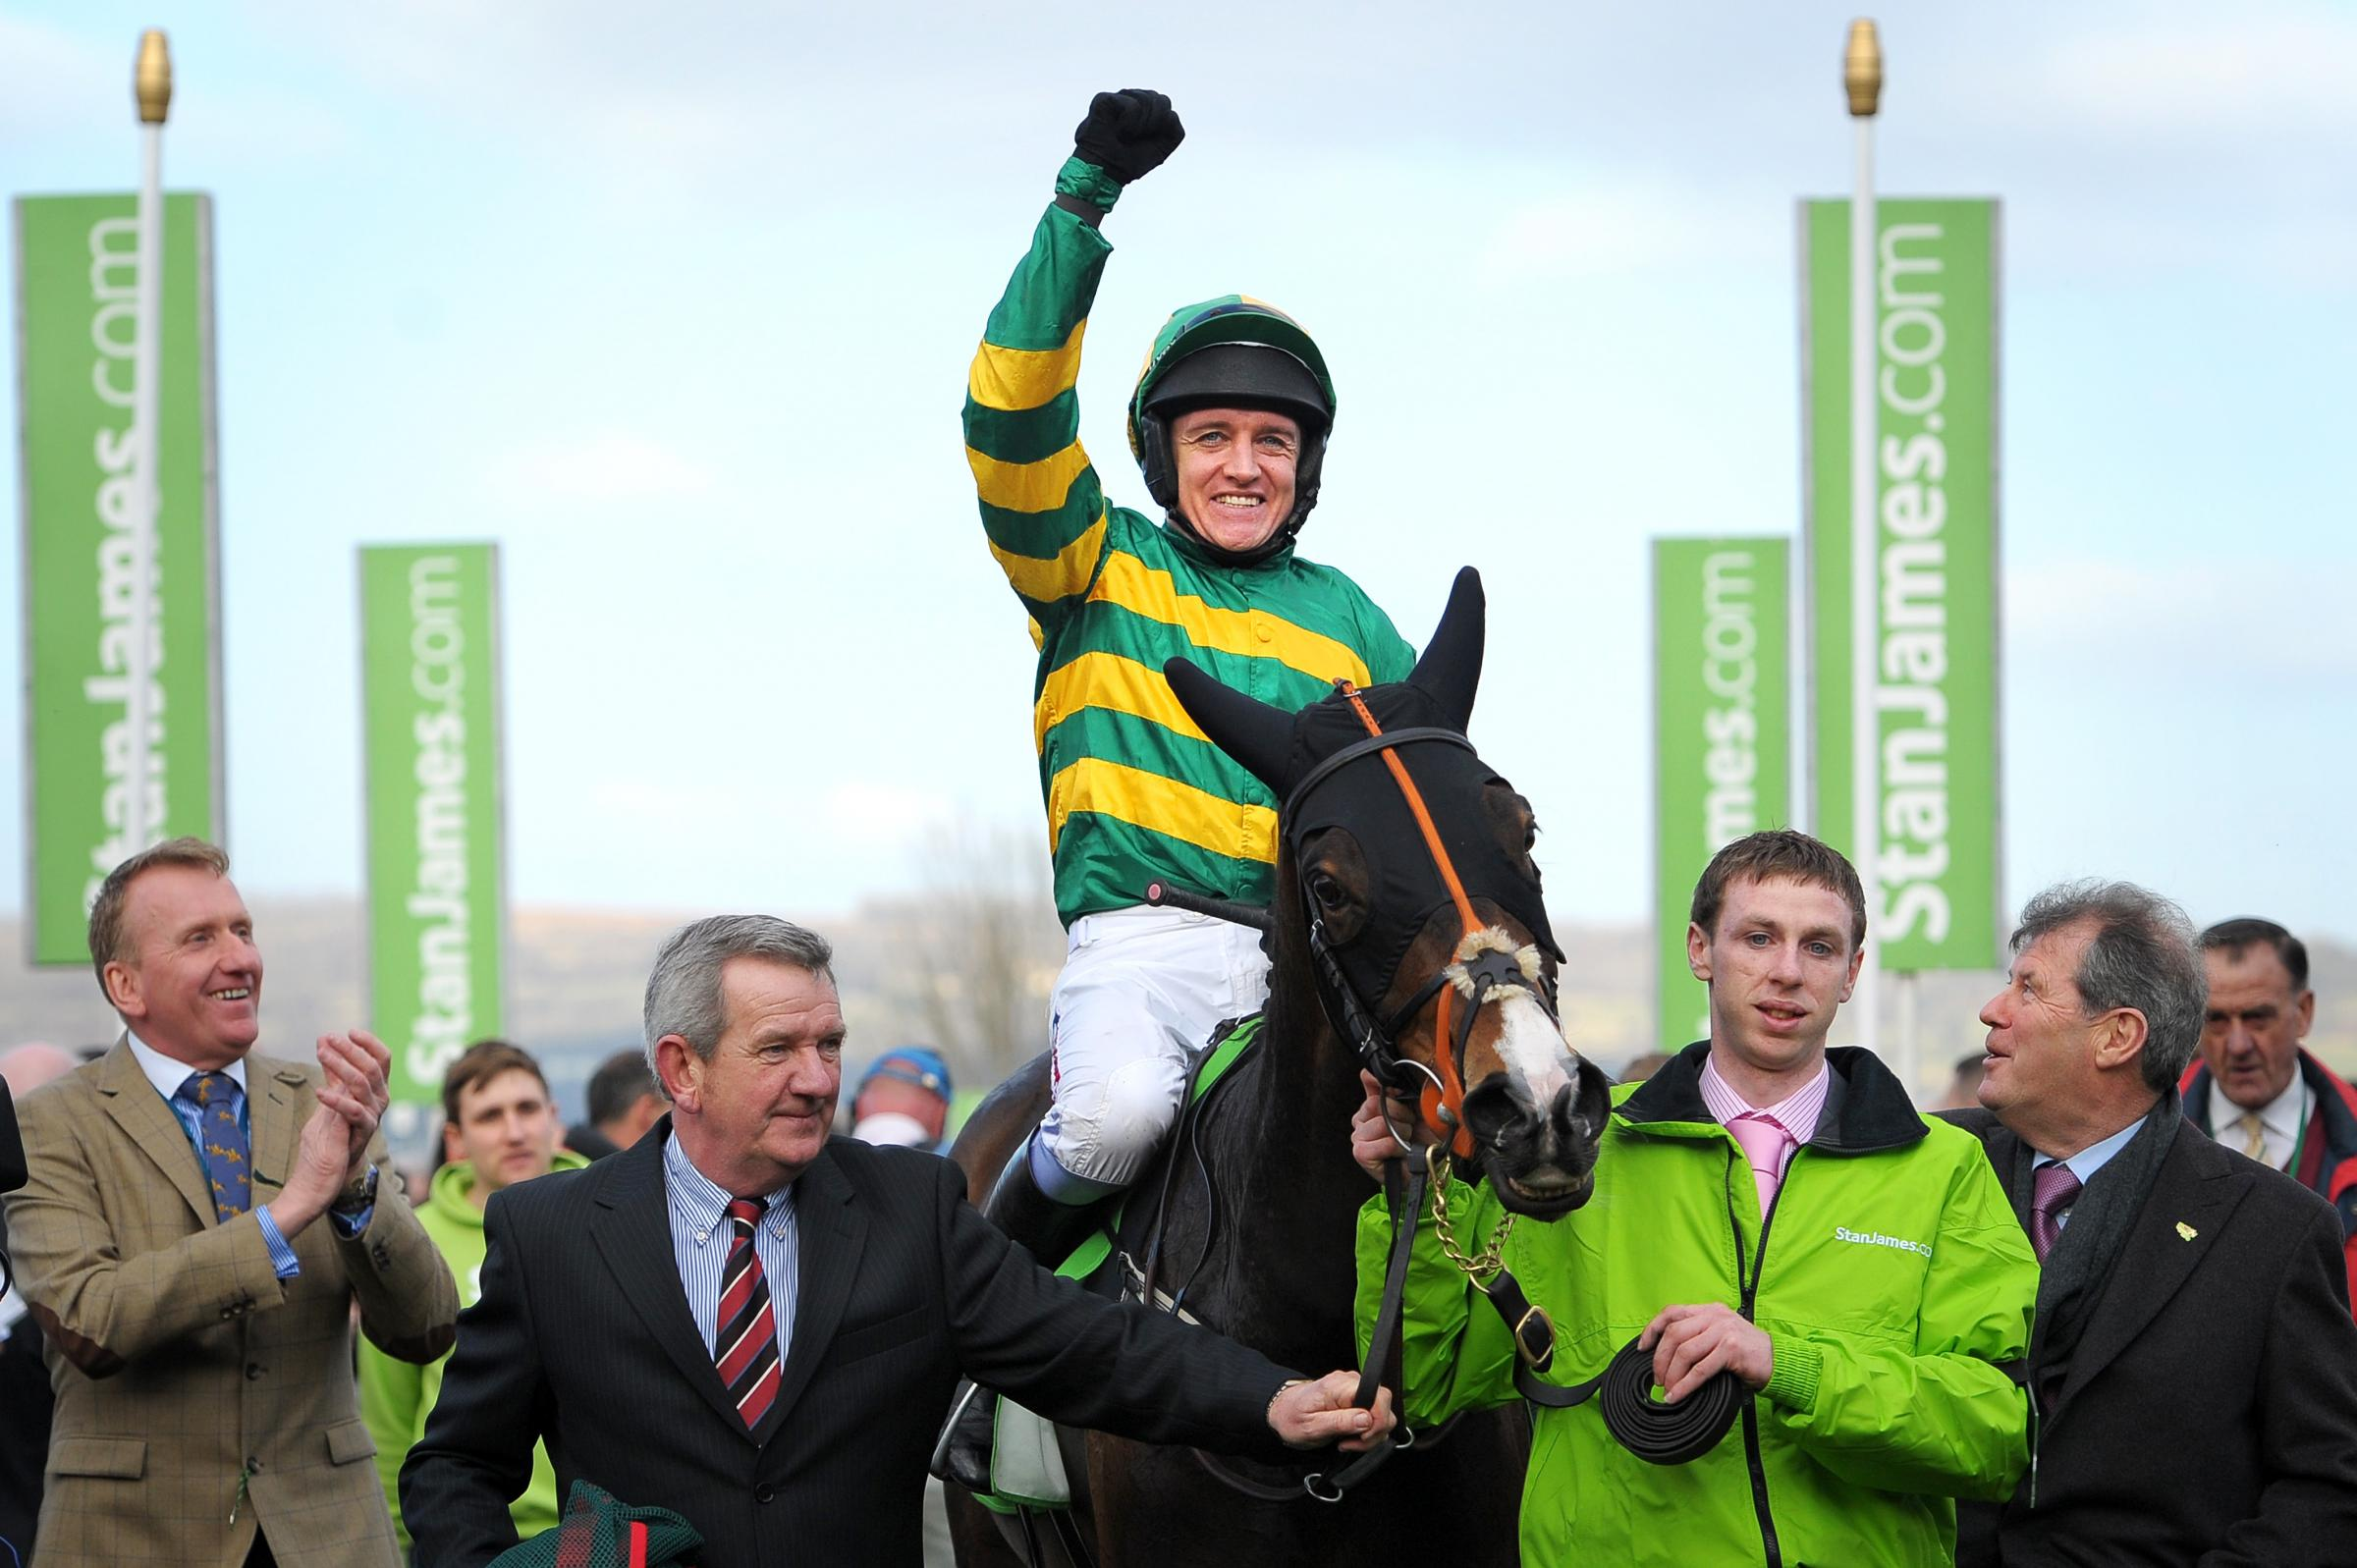 JUST CHAMPION: Barry Geraghty on Jezki celebrates winning the Stan James Champion Hurdle at Cheltenham